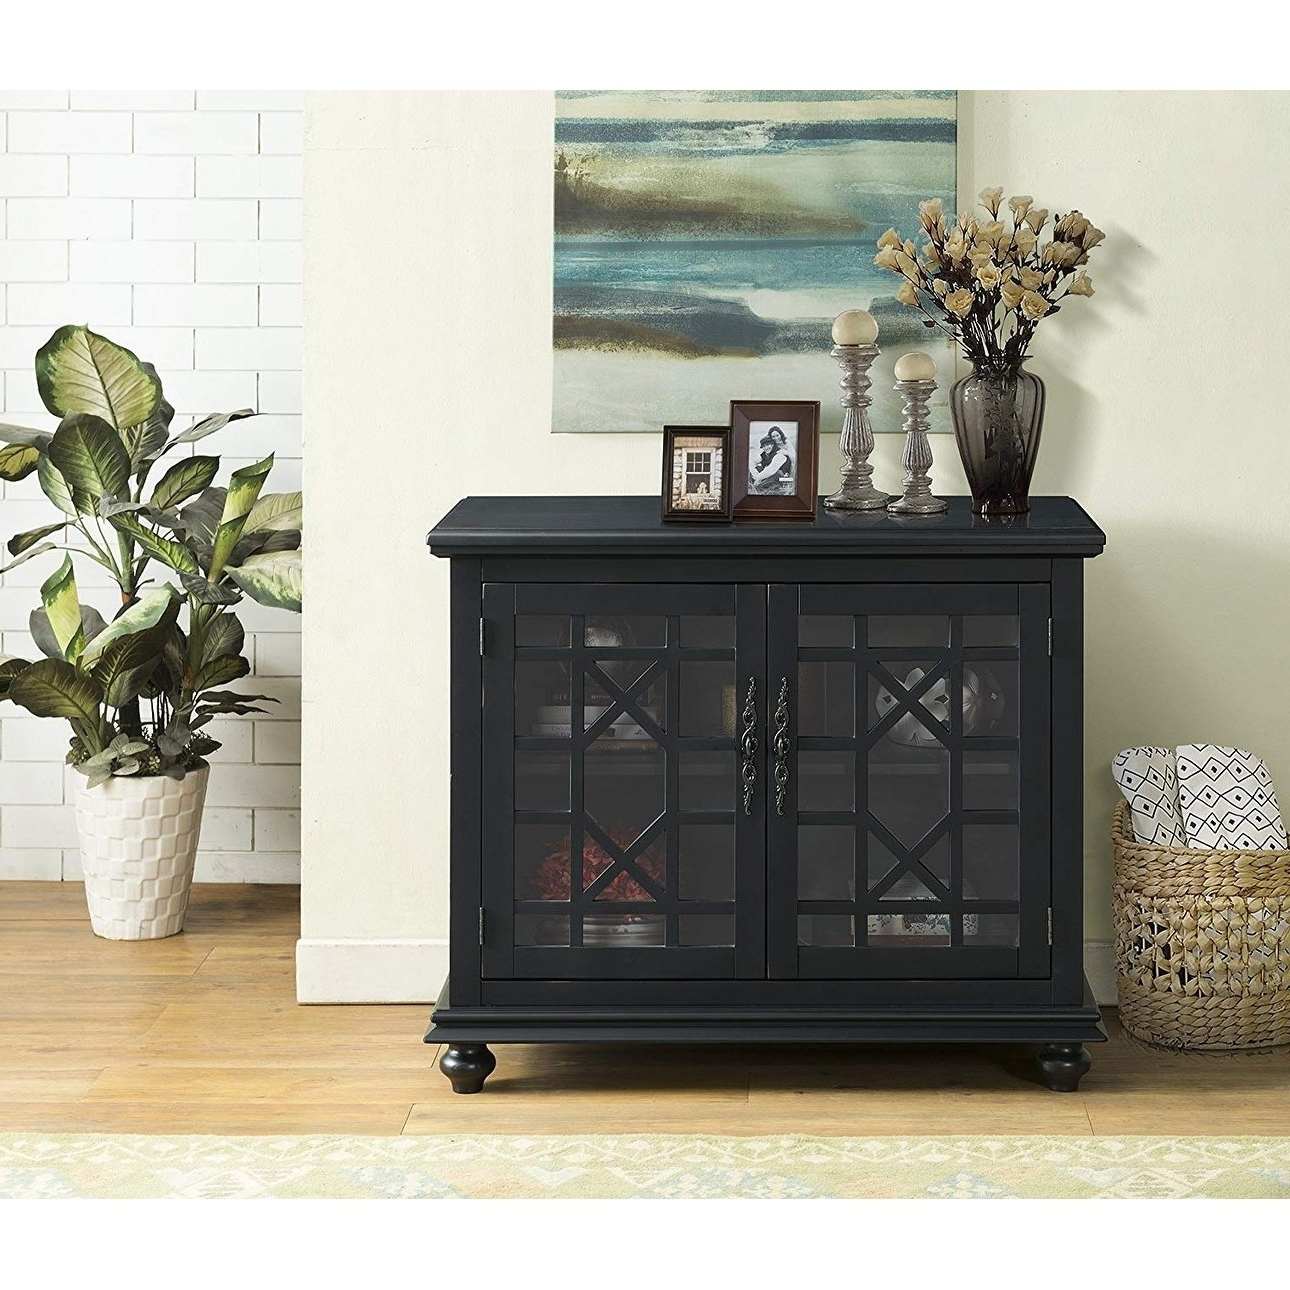 Shop Wooden Tv Stand With Trellis Detailed Doors, Antique Black Within Maddy 60 Inch Tv Stands (View 19 of 20)